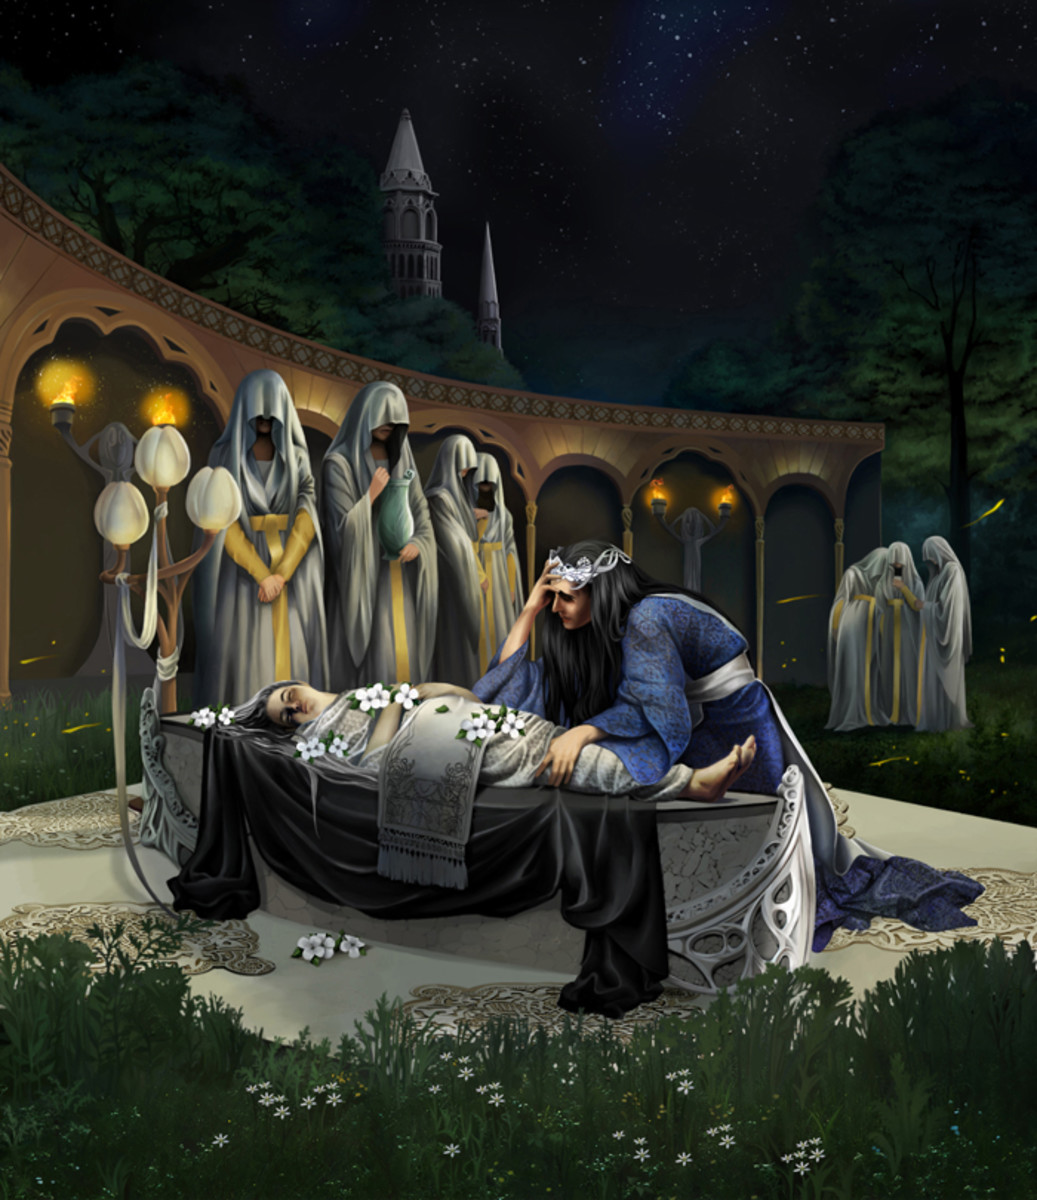 By artist Steamey.  The death of Miriel, first High Queen of the Noldor and mother to Feanor.  Finwe never truly recovers from her death and thus has a stronger attachment to Feanor.  Fingolfin and the rest of his family have to deal with her legacy